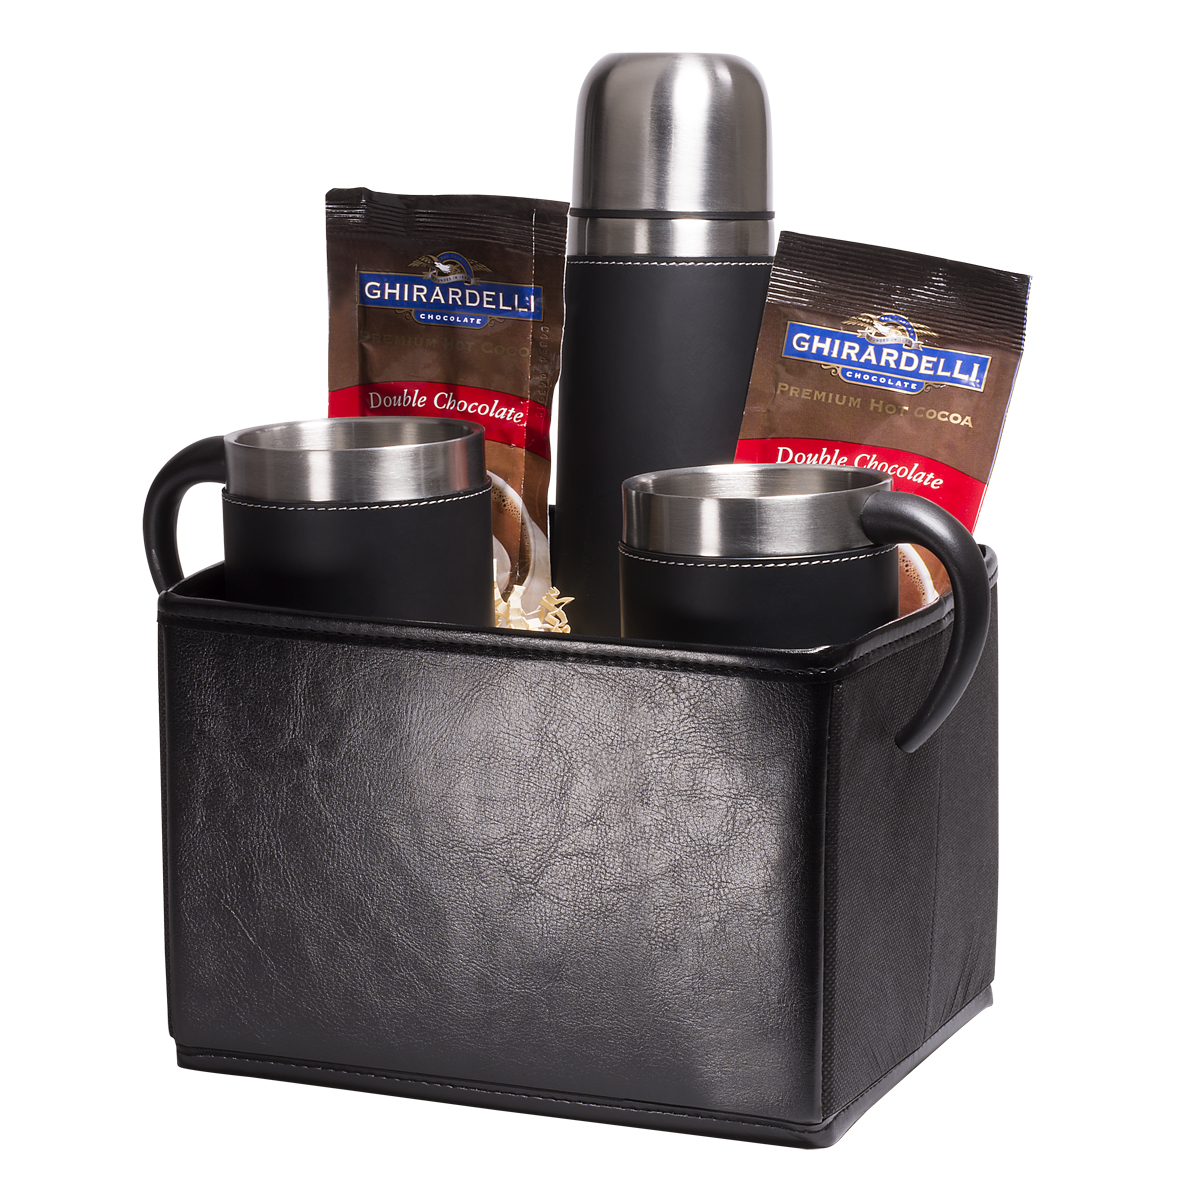 Tuscany™ Thermal Bottle & Cups Ghirardelli® Cocoa Set